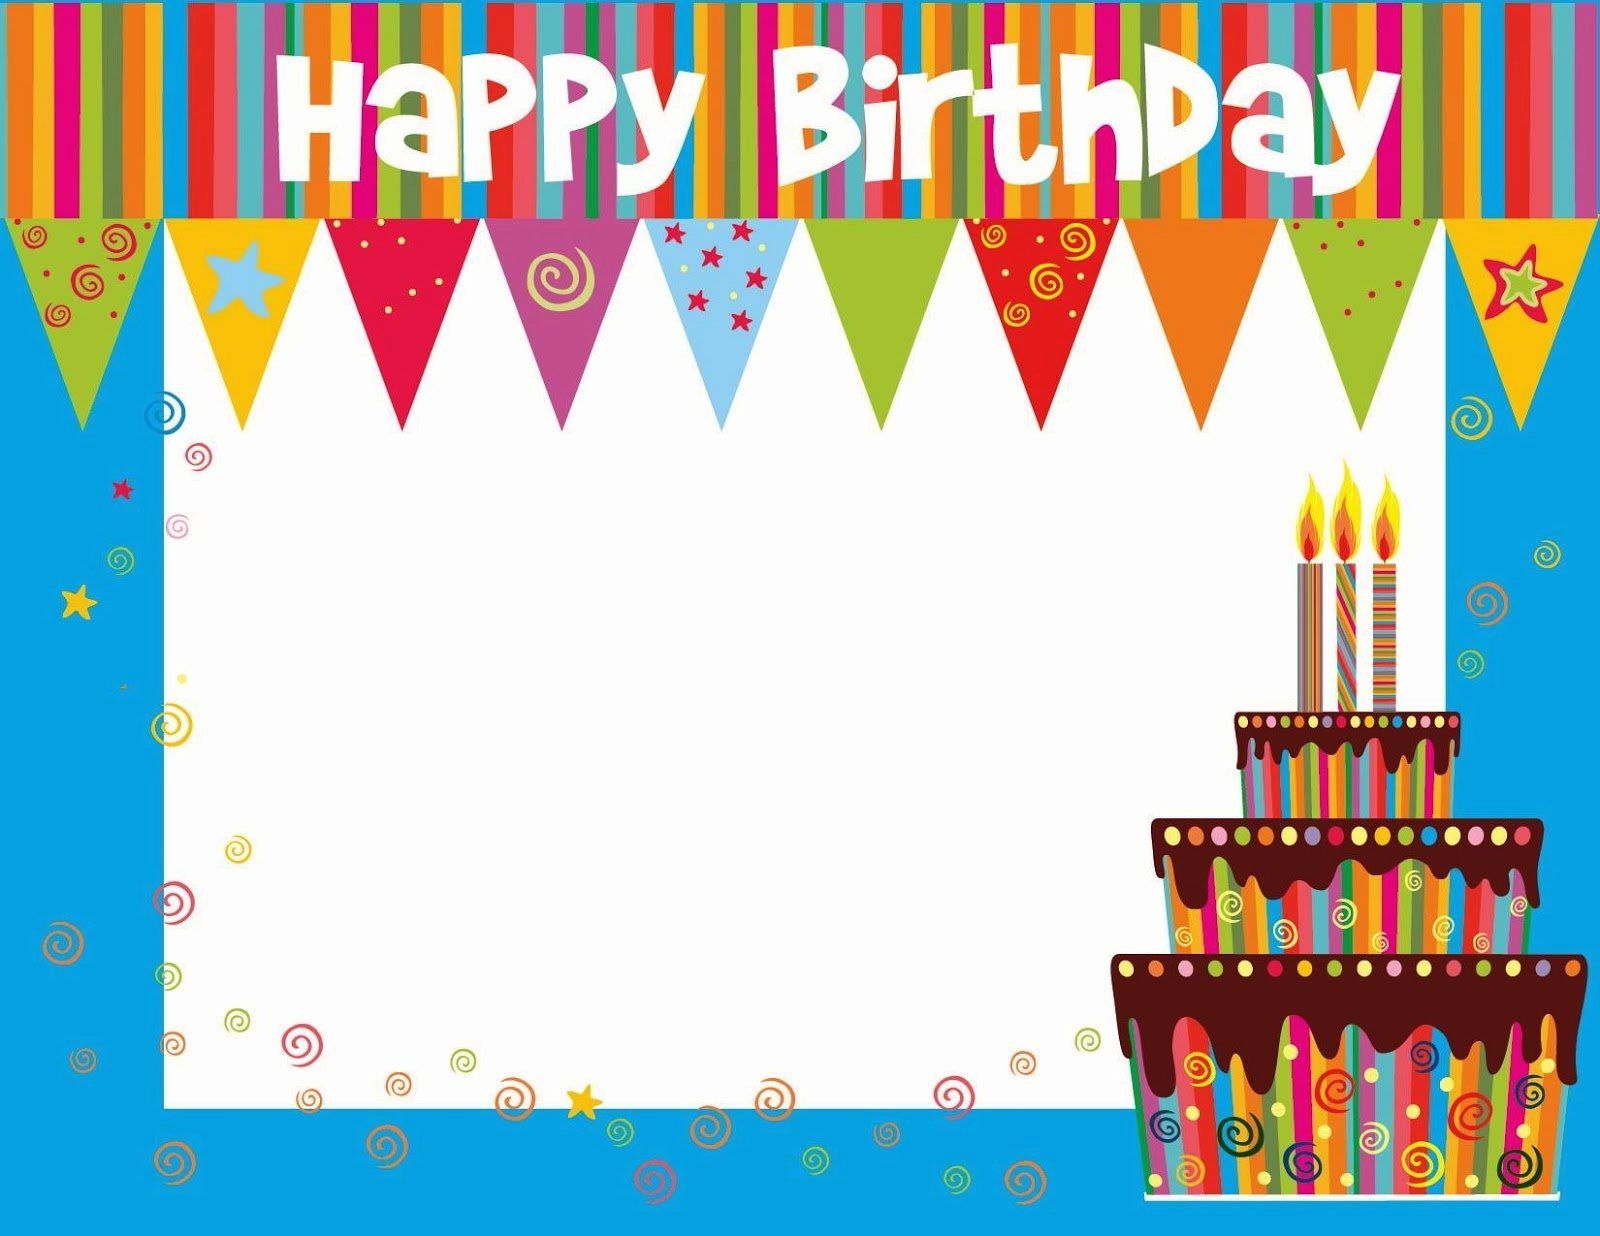 Happy Birthday Template Free Beautiful Free Printable Birthday Cards Ideas Greeting Card Template